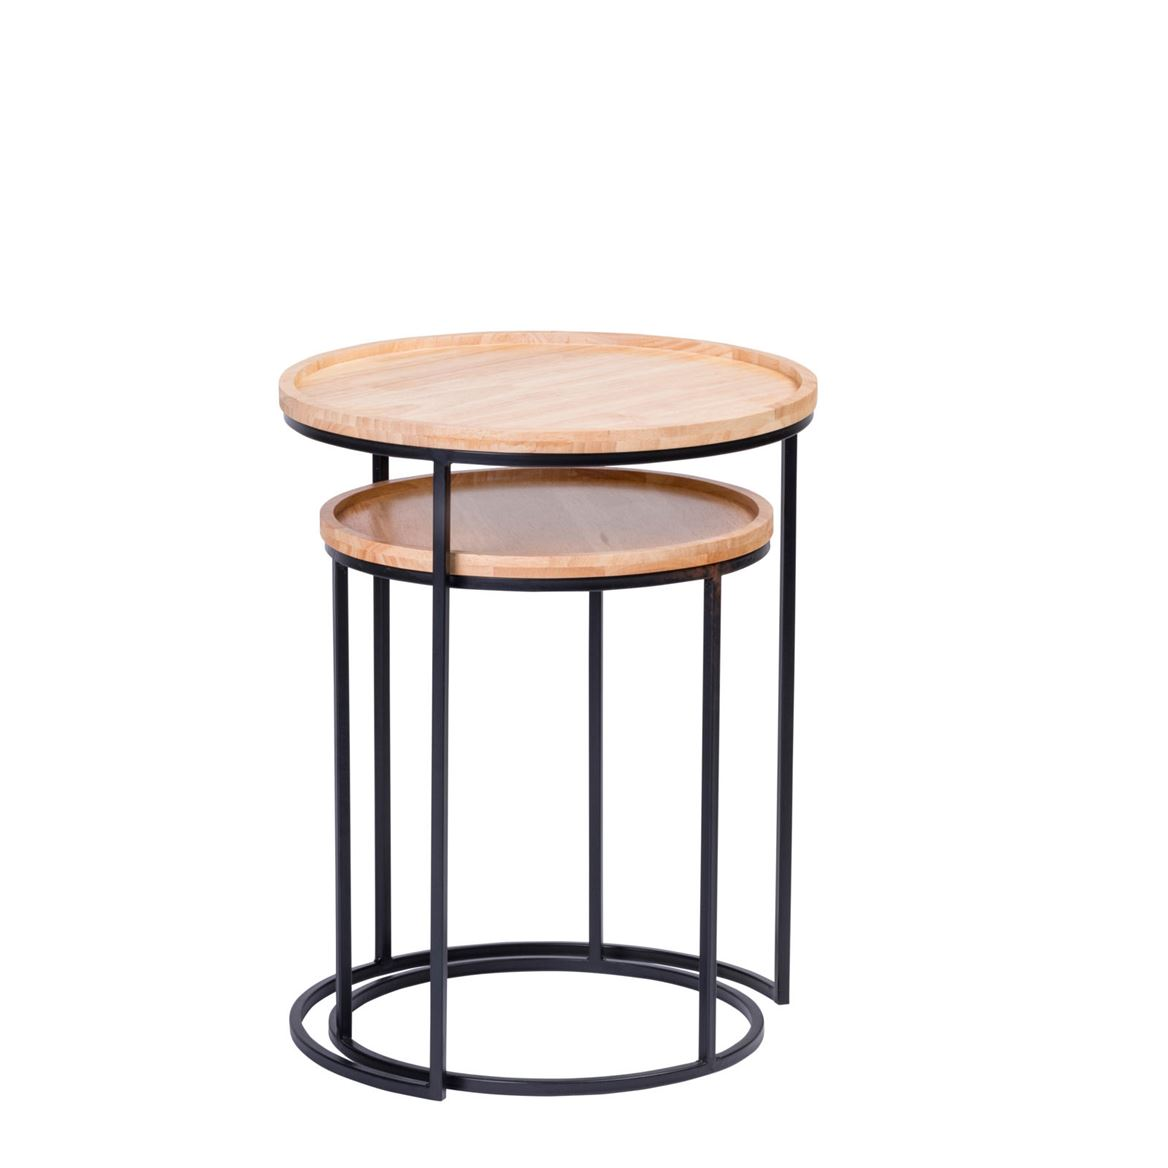 GOM Tables d'appoint set de 2 naturel_gom-tables-d'appoint-set-de-2-naturel